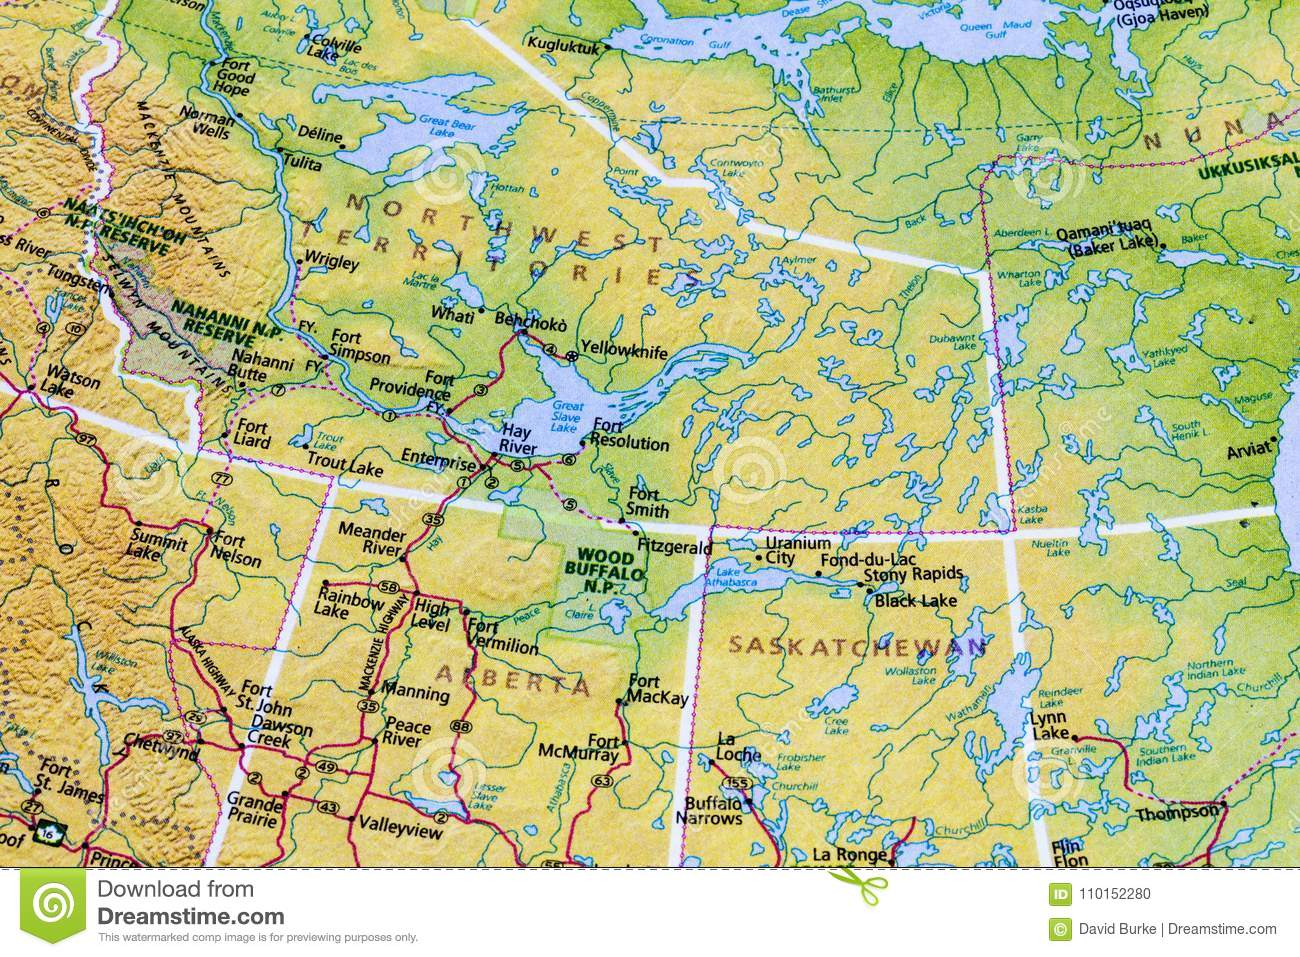 Northwest Territories Canada Map.Canadian Canada Map Atlas Stock Photo Image Of Vacation 110152280